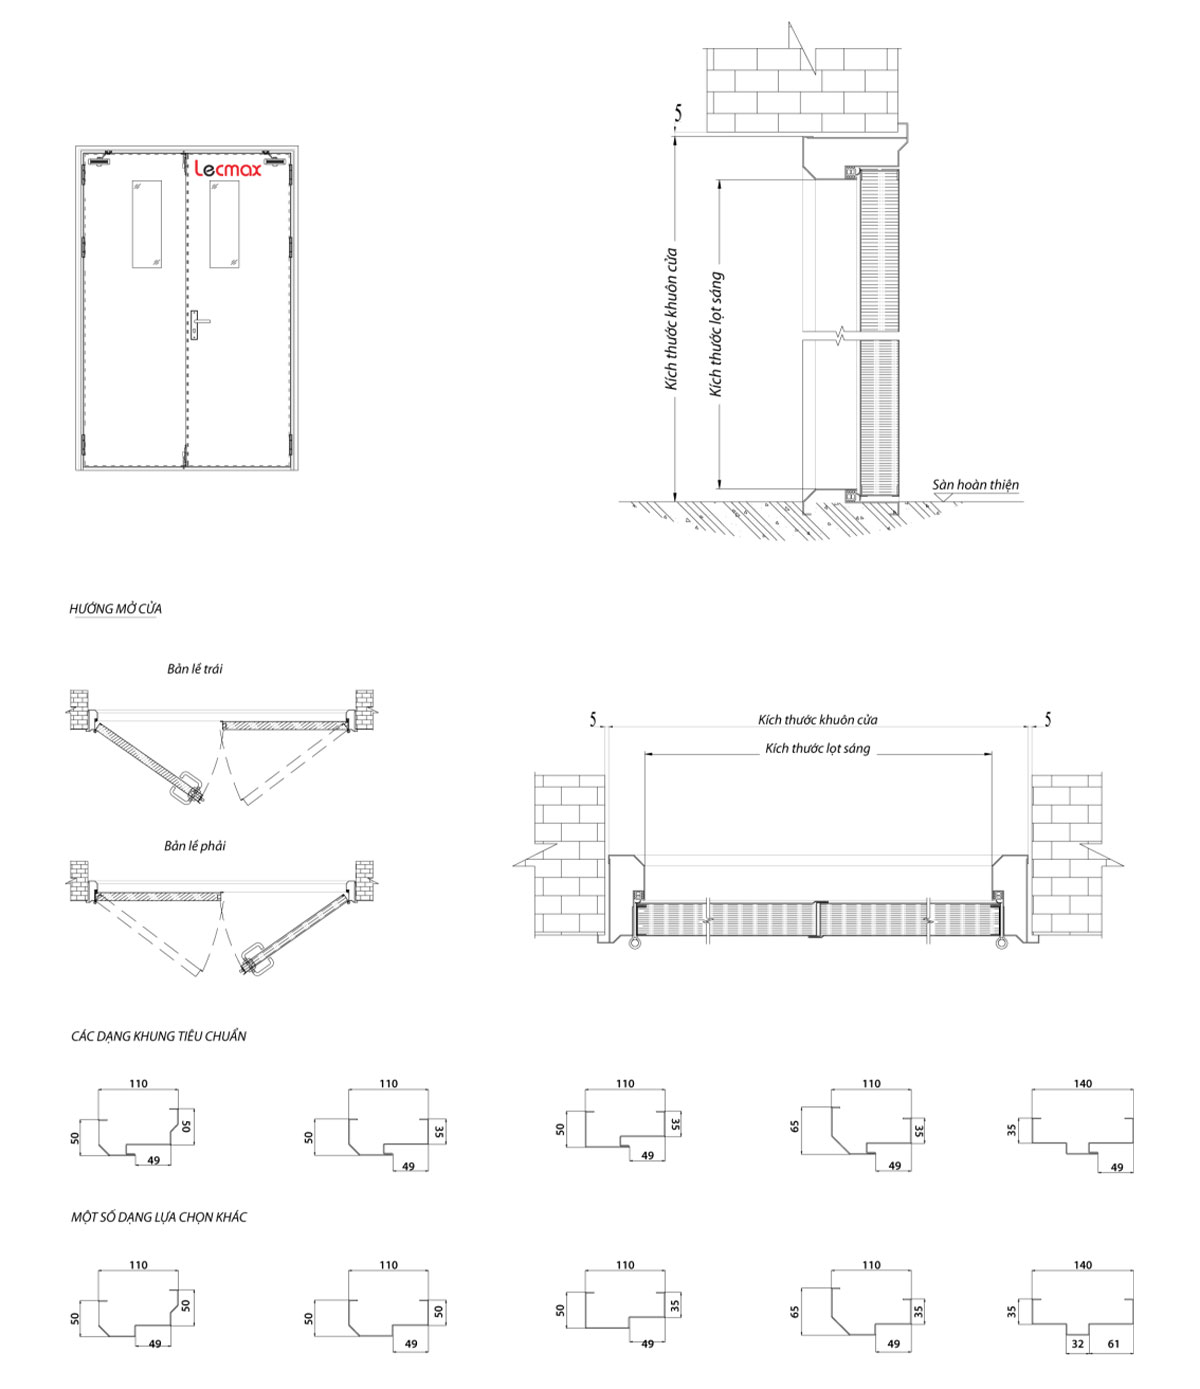 Technical drawings - LM FSD 70